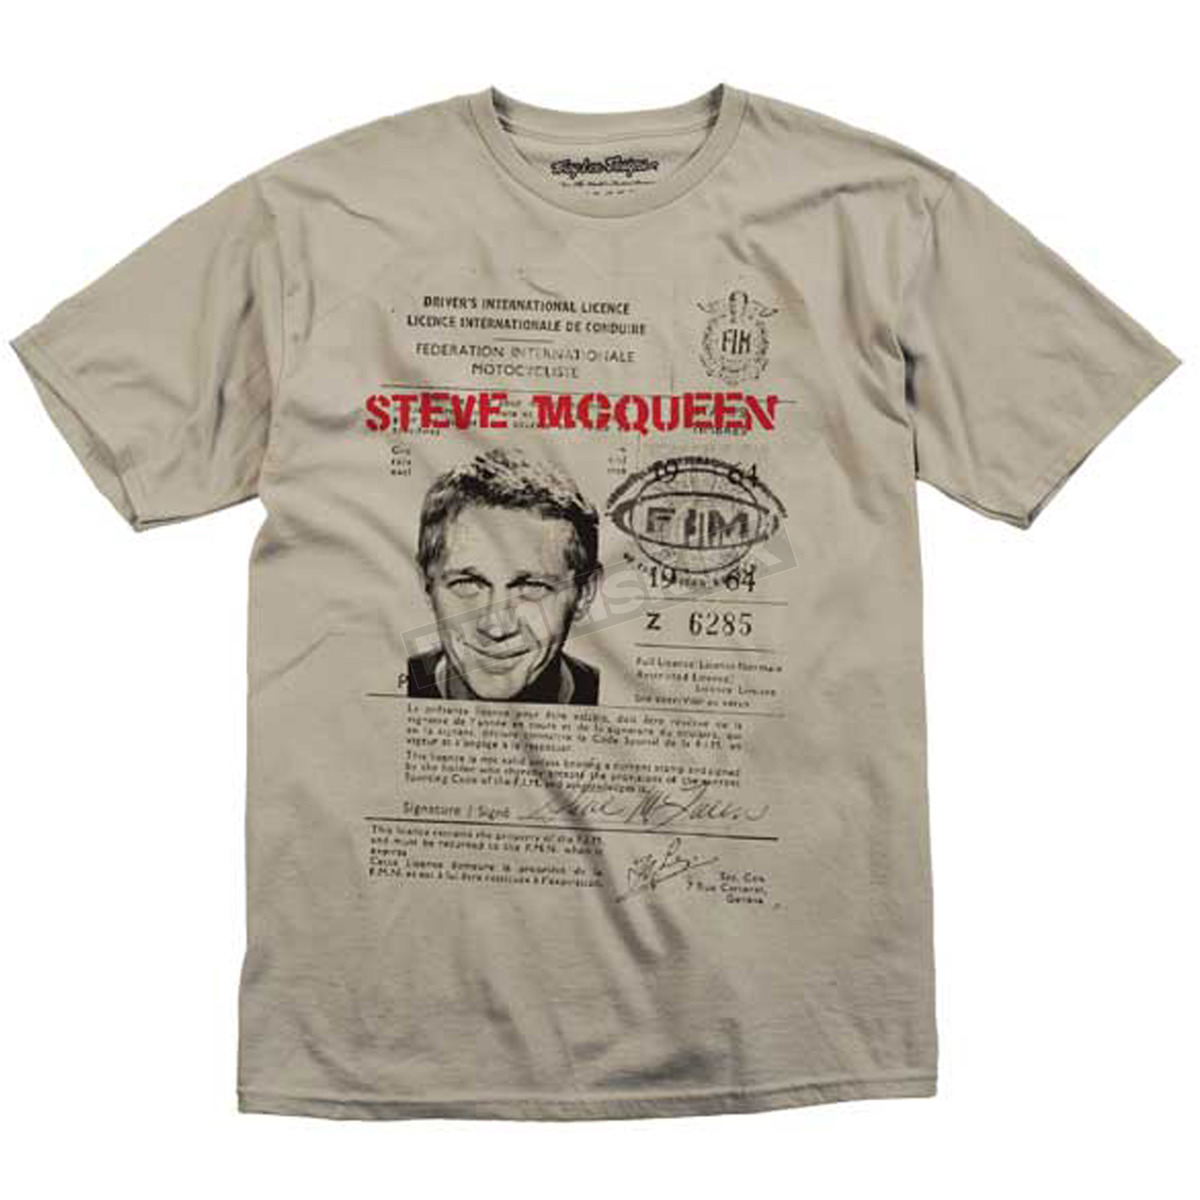 Troy lee designs mcqueen drivers license t shirt 1602 for T shirt licensing agreement